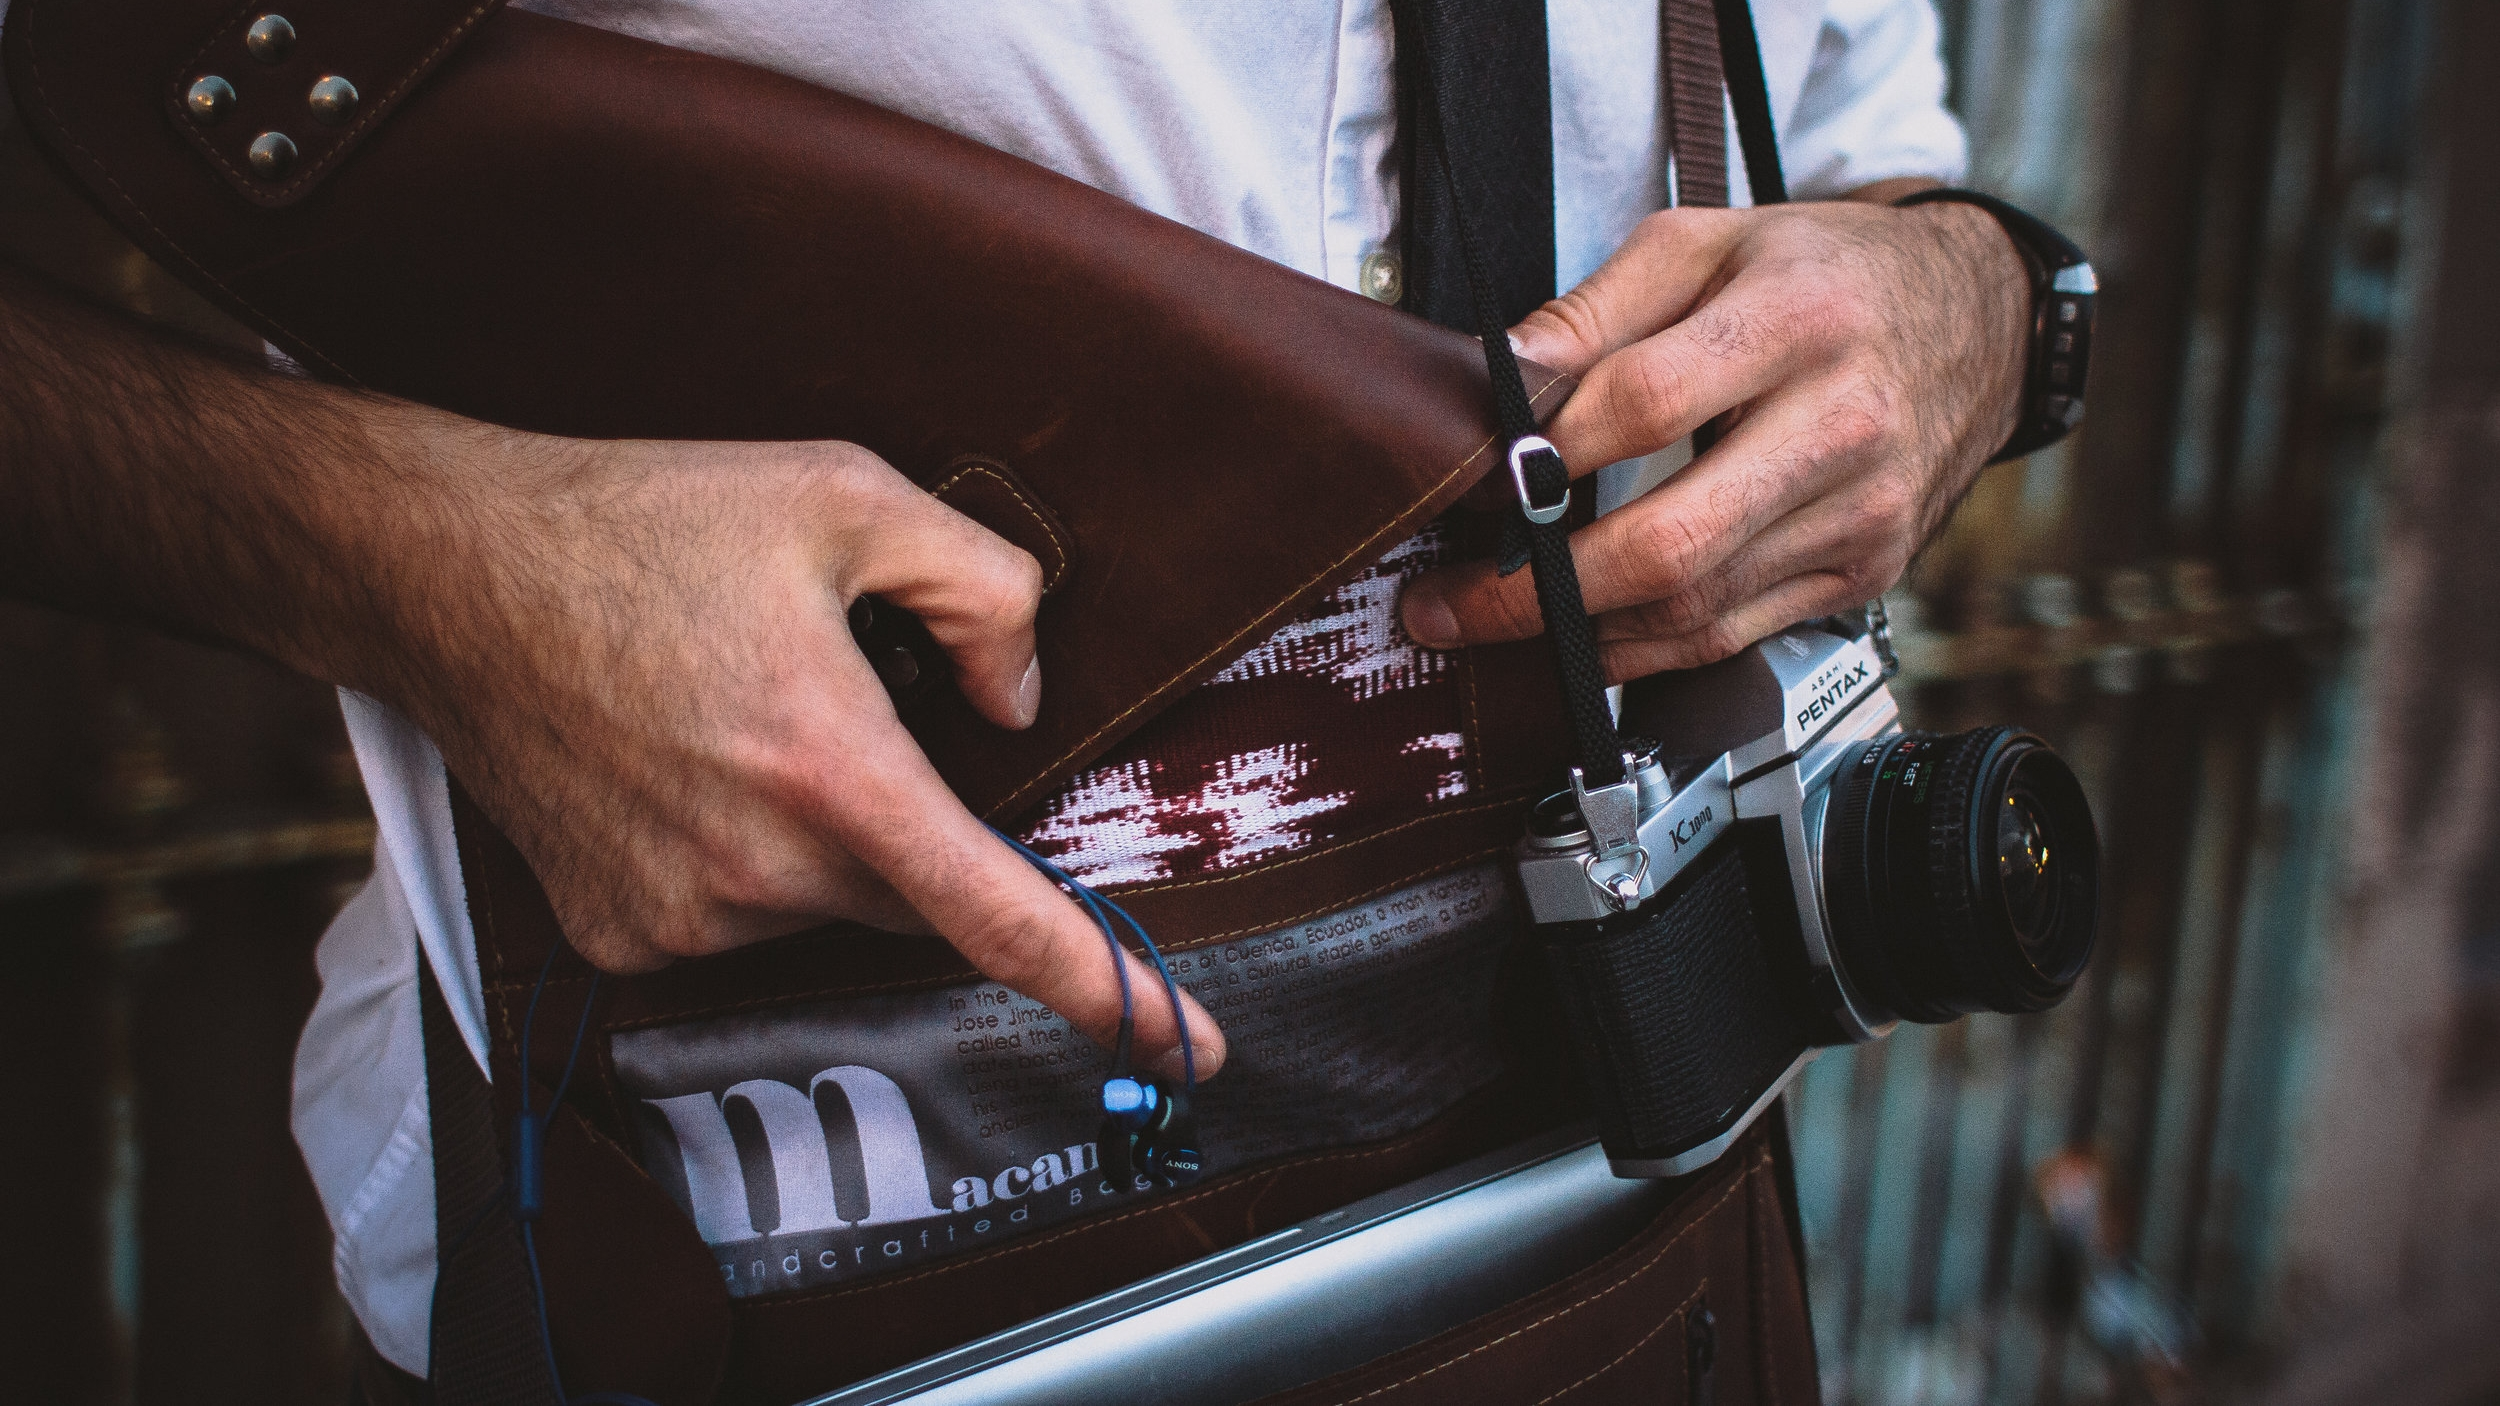 Macana Bag - Heirloom quality laptop bags lined with fabric handwoven using Incan tradition.